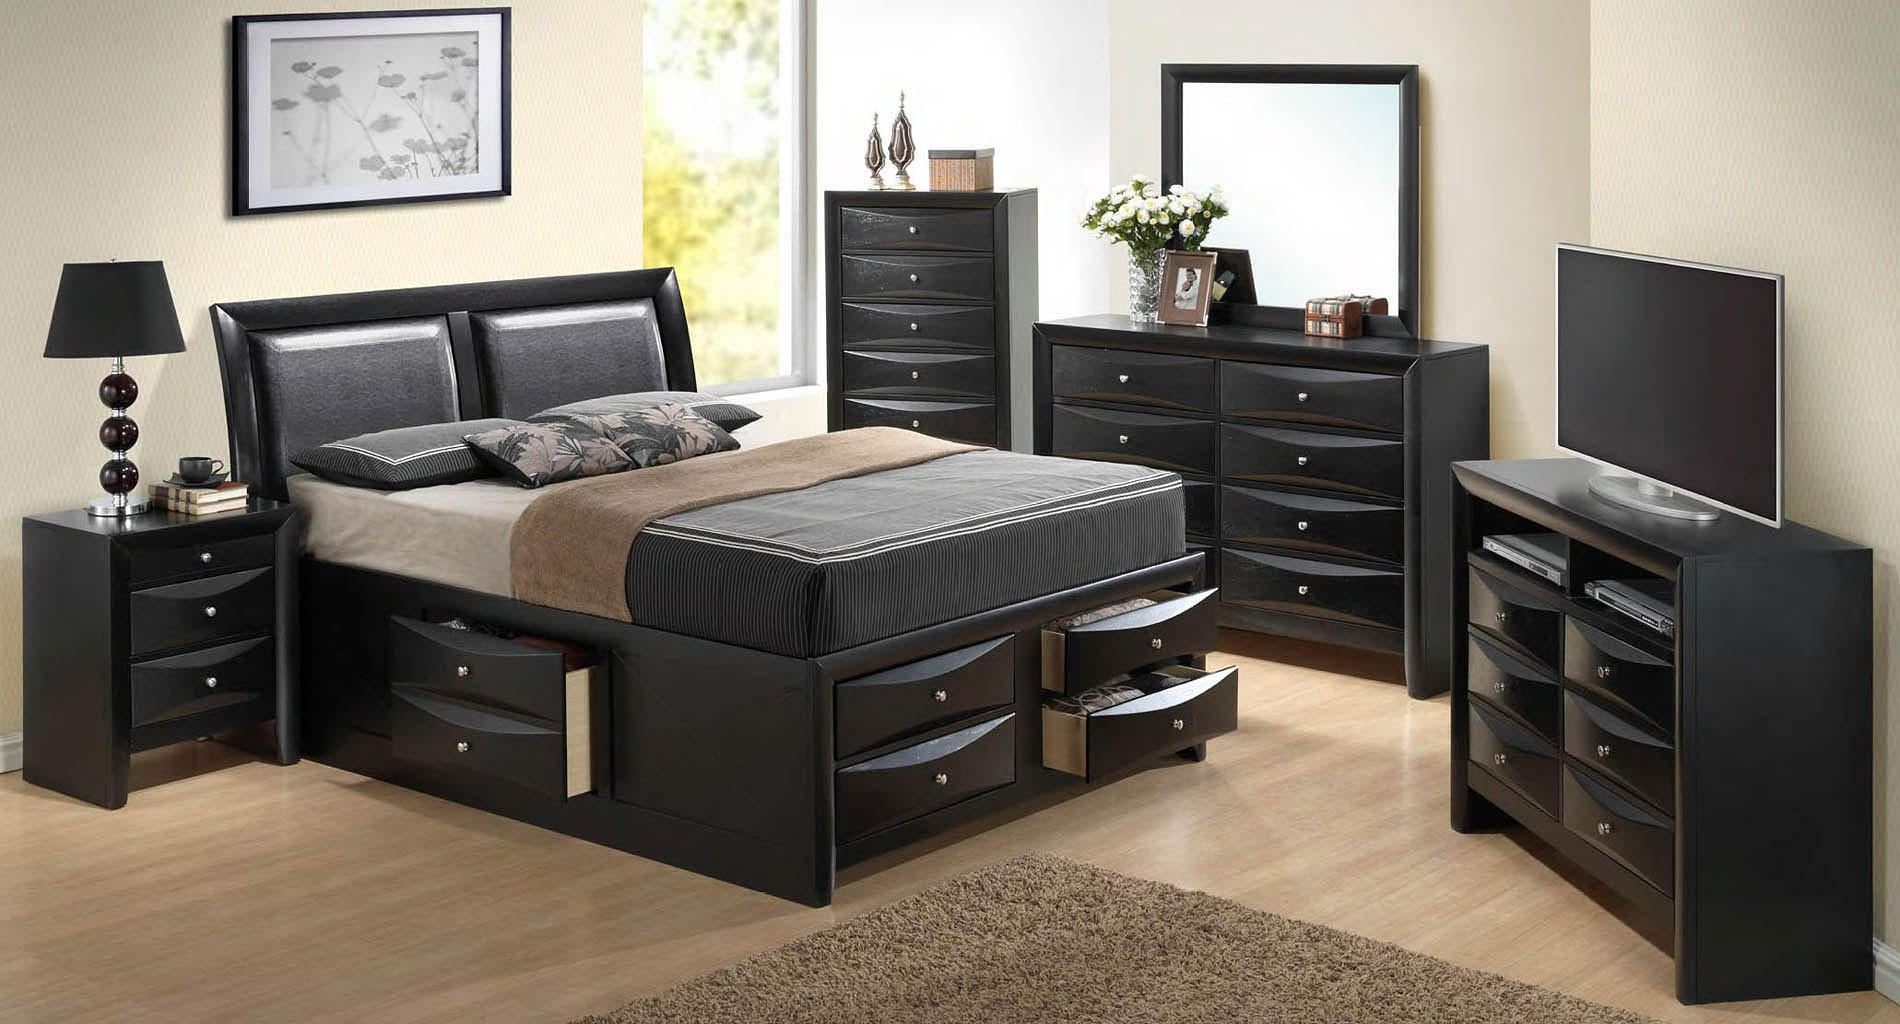 Glory g1500i youth storage bedroom set g1500 collection - Youth bedroom furniture with storage ...